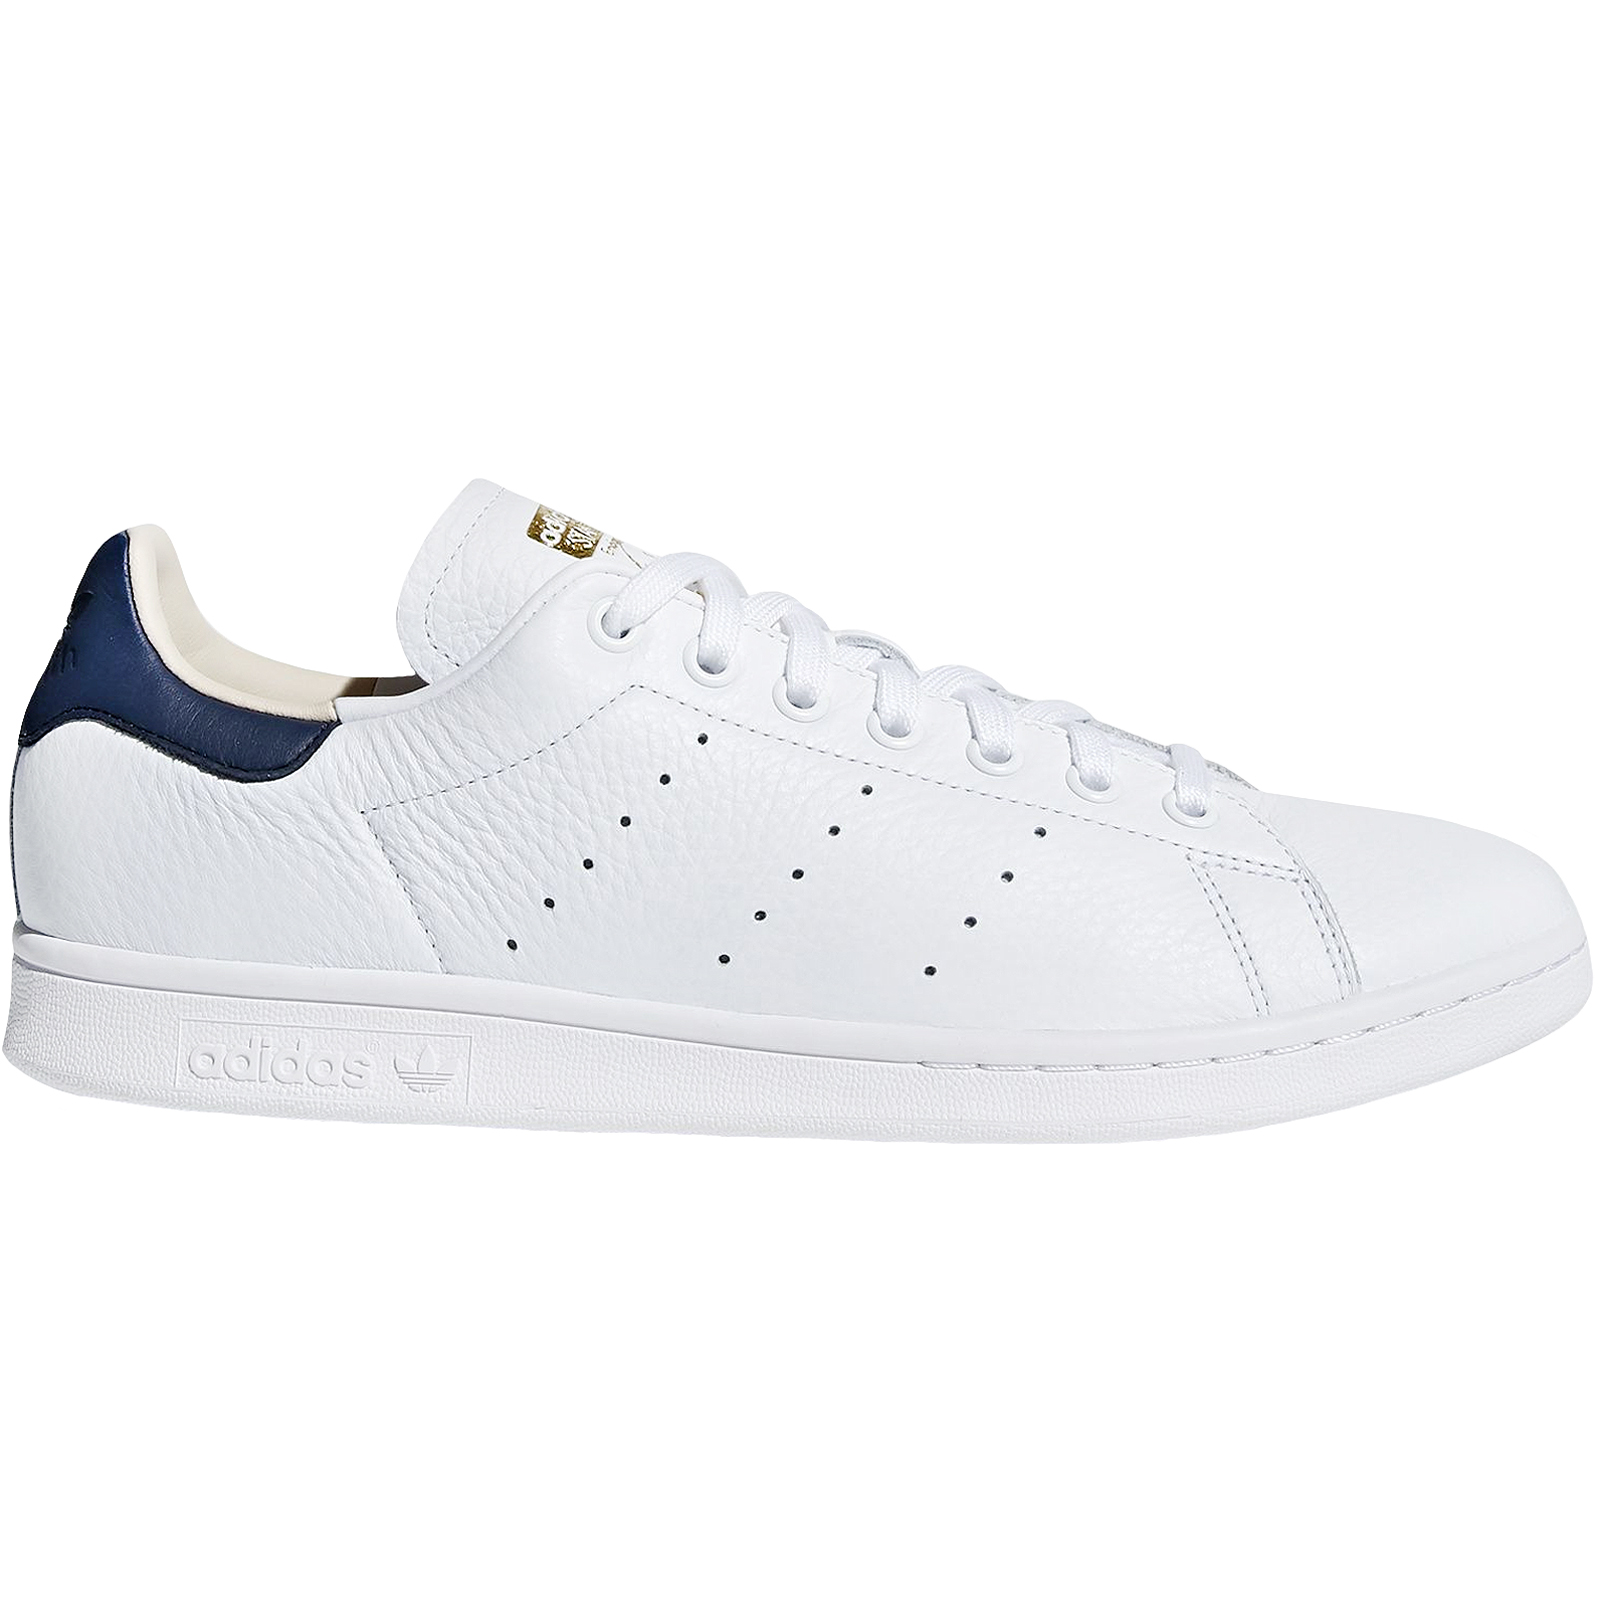 Details about adidas Originals Mens Stan Smith Low Rise Casual Lace Up Trainers WhiteNavy 4.5  großer Rabatt